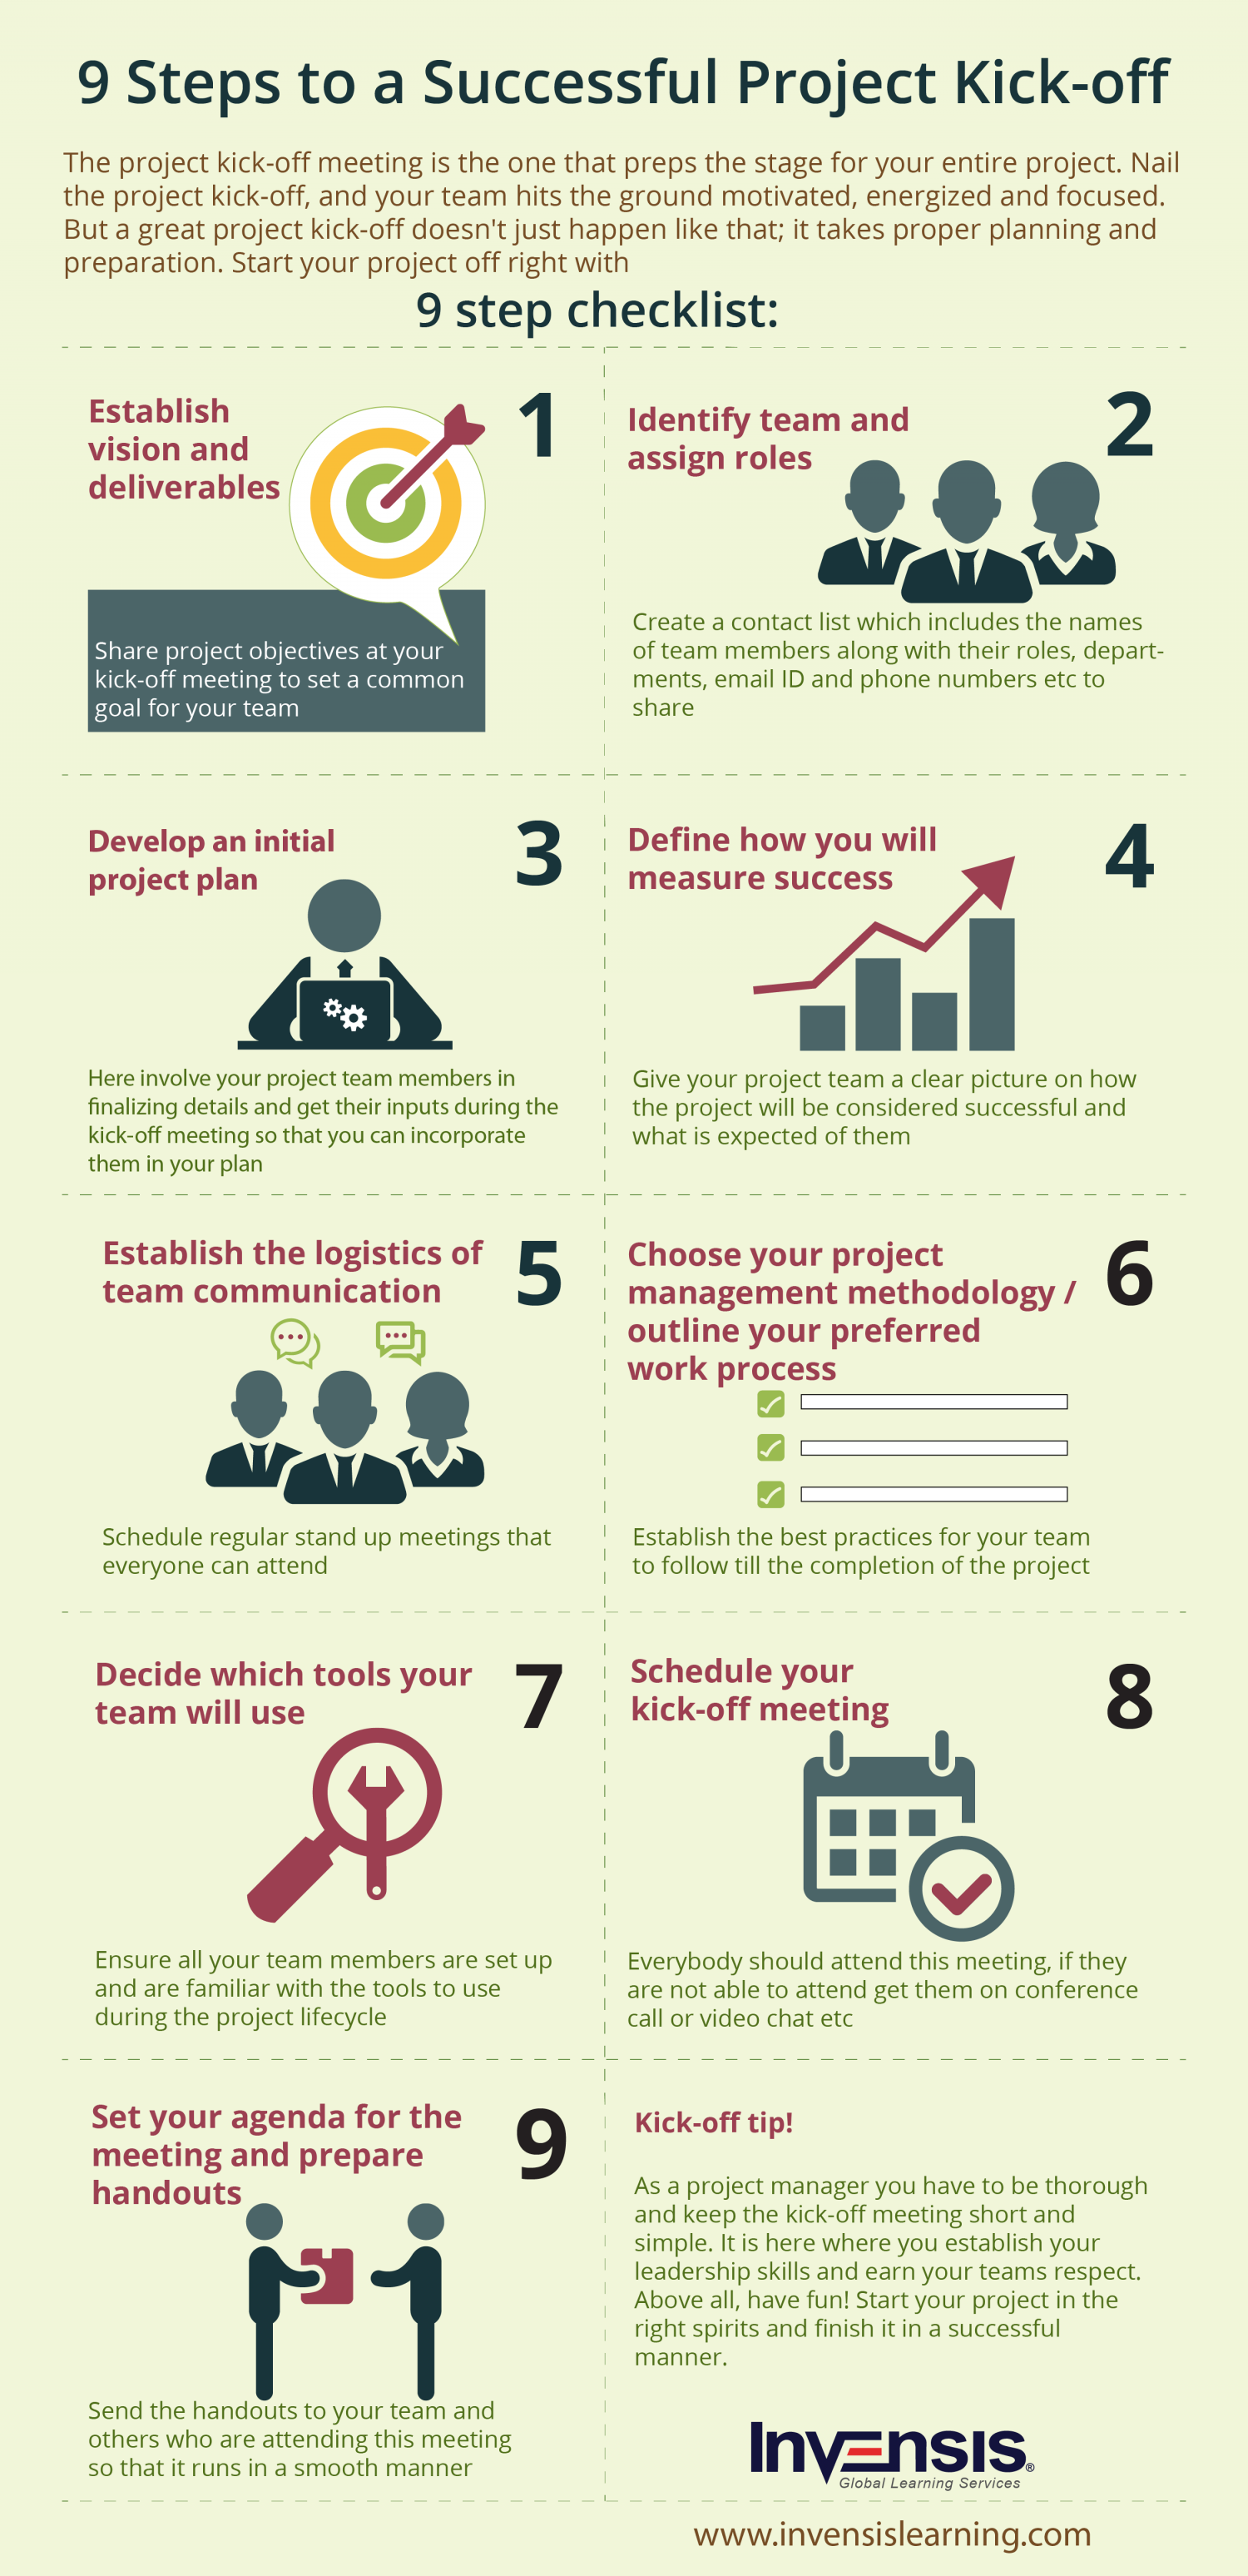 9 Steps to a Successful Project Kick - off | Visual.ly